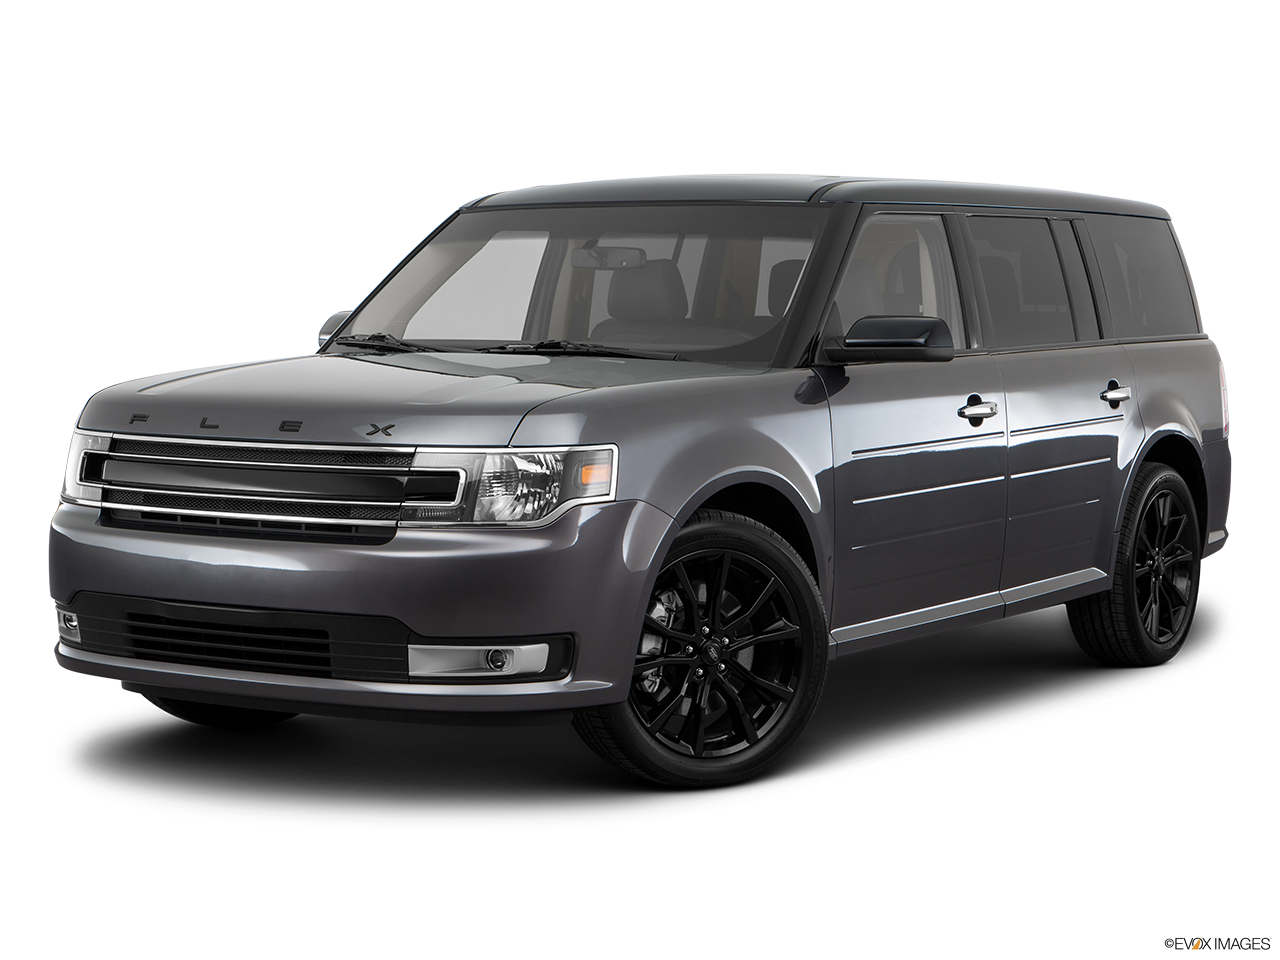 Test Drive A 2016 Ford Flex at Galpin Ford in Los Angeles